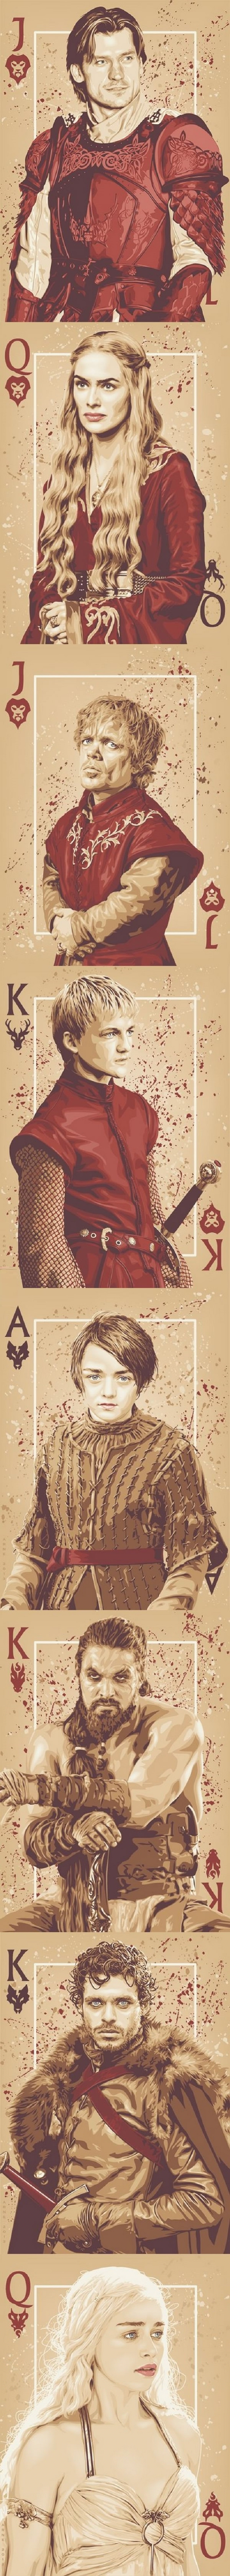 Game of Throne cards